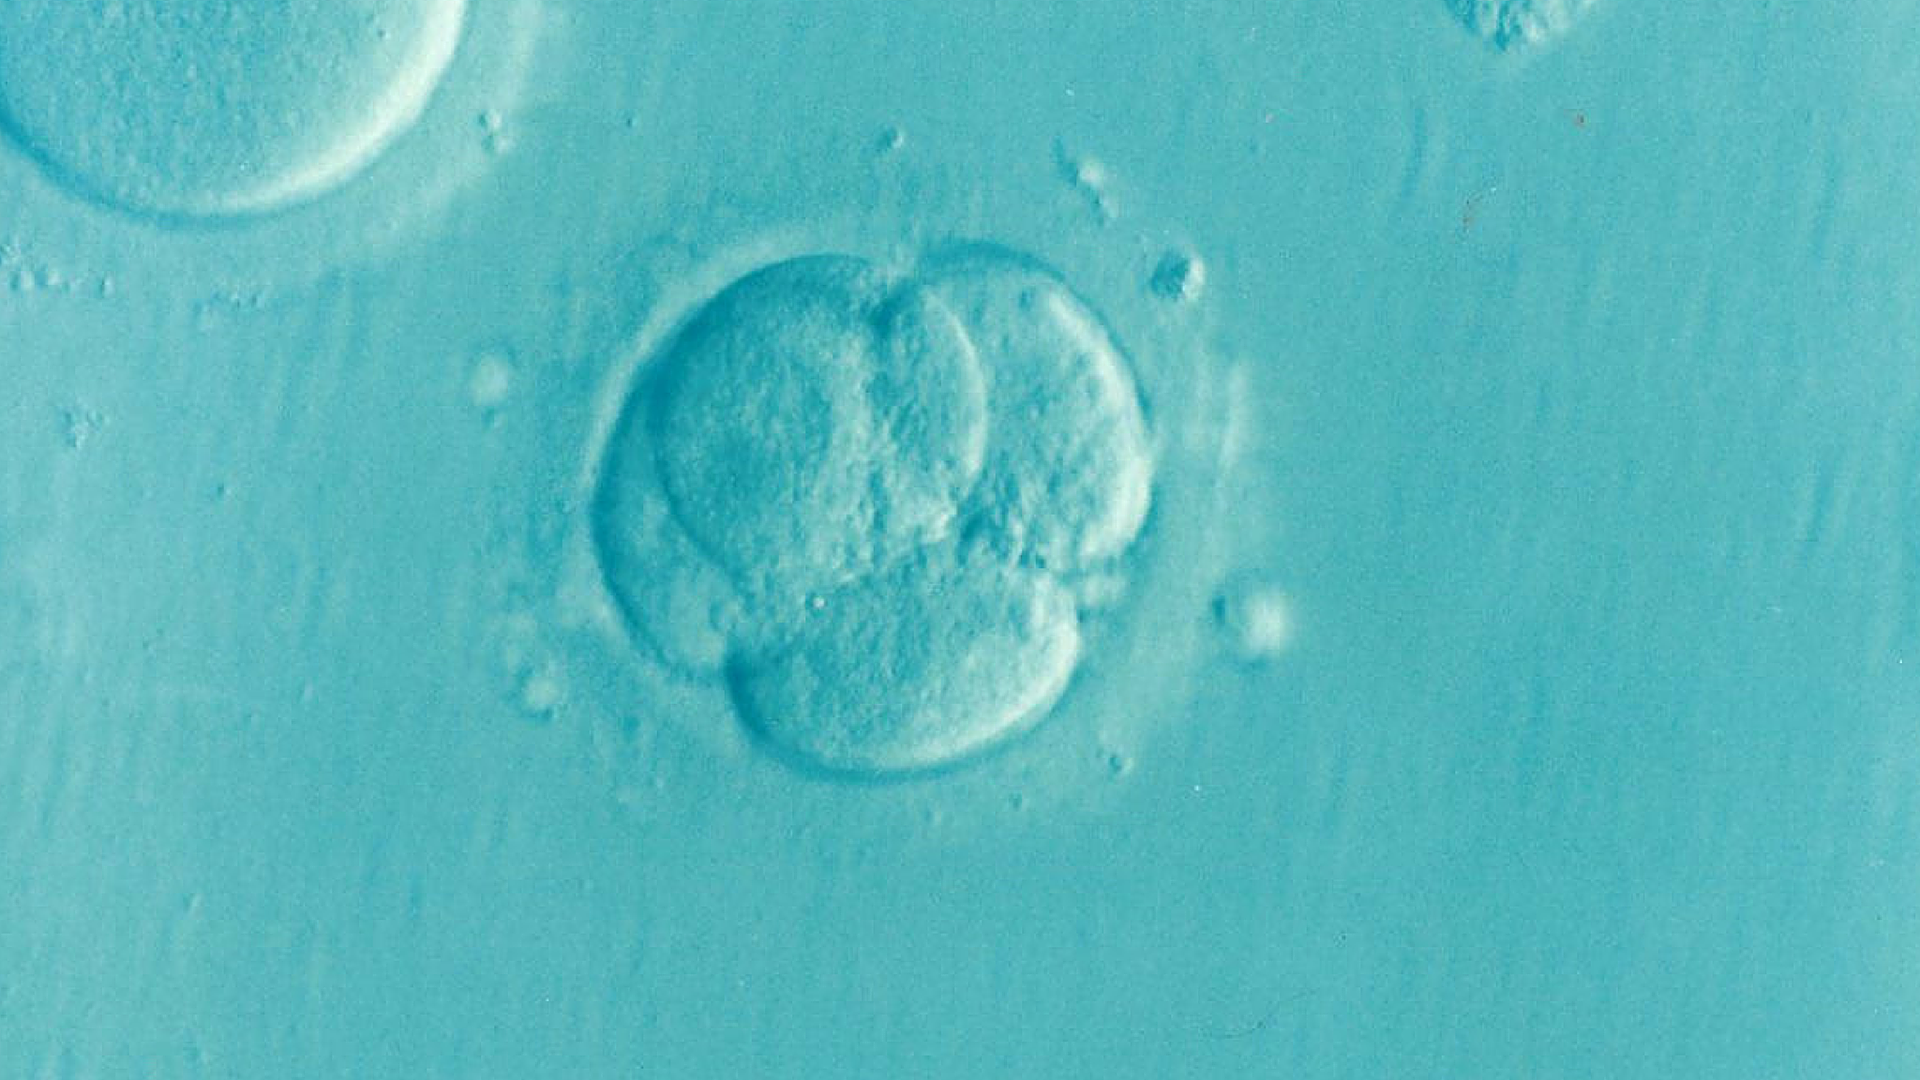 An embryo just after fertilization